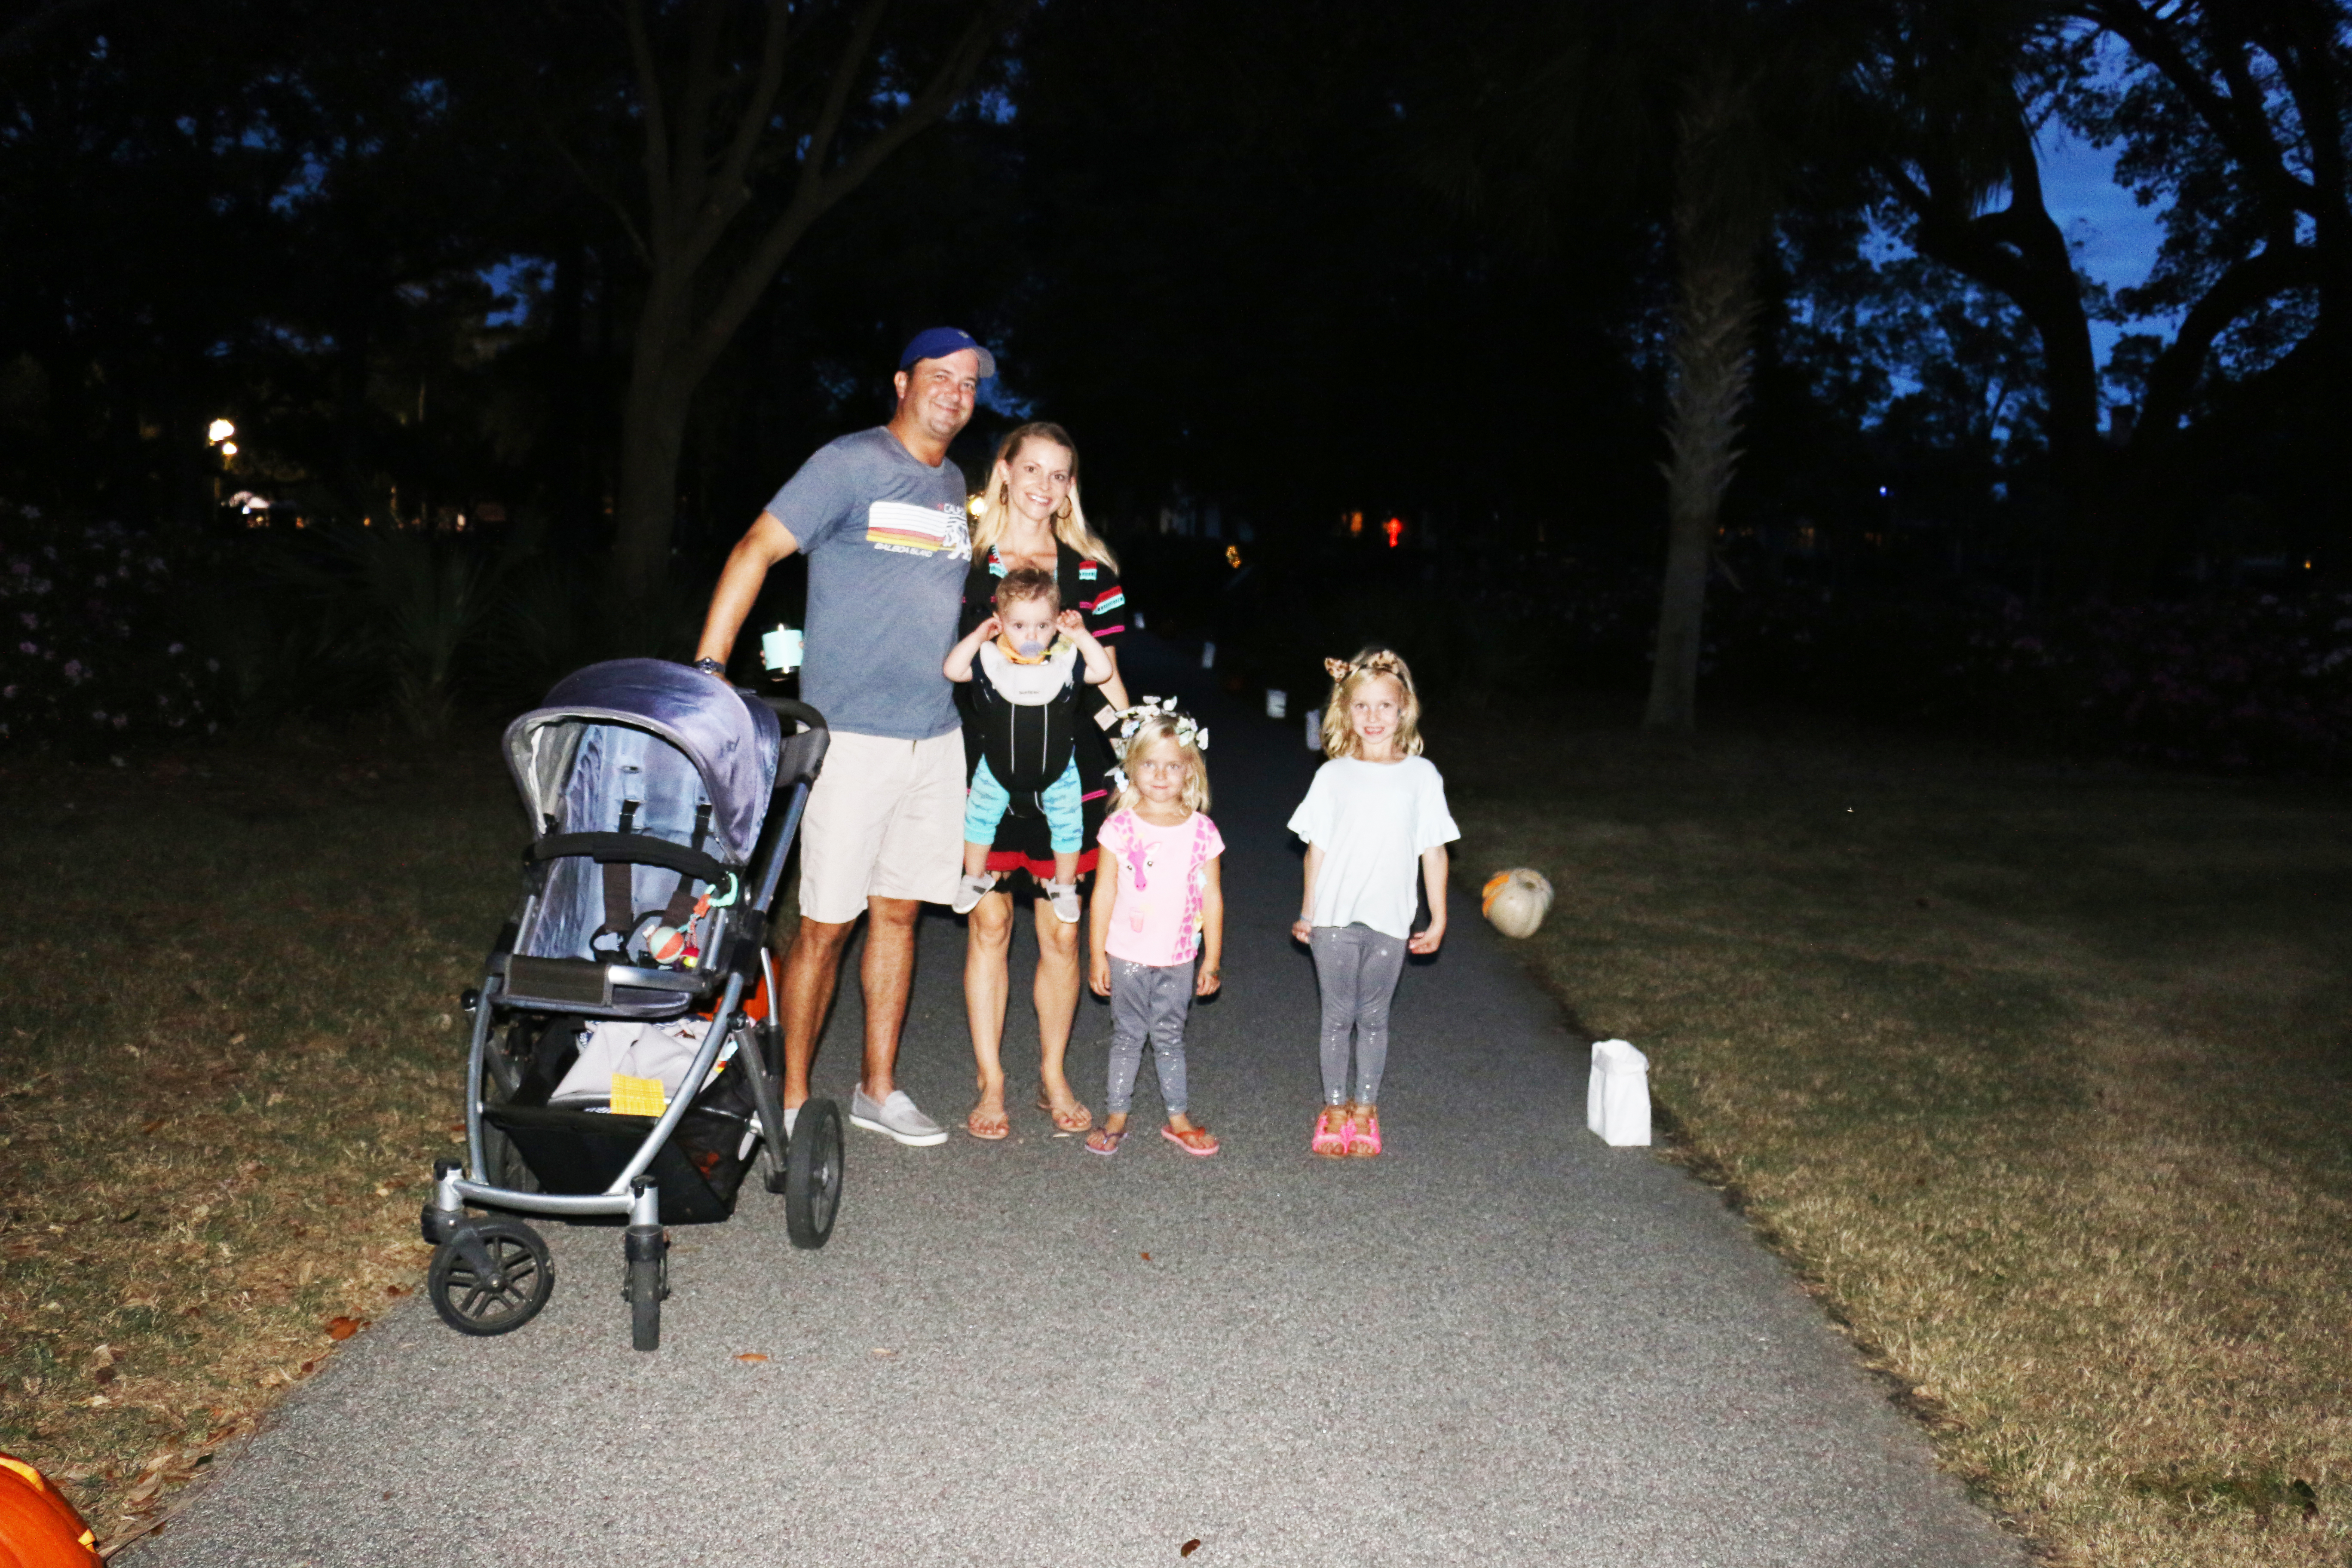 The Brittingham Family strolls the walking path lined with decorated pumpkins.